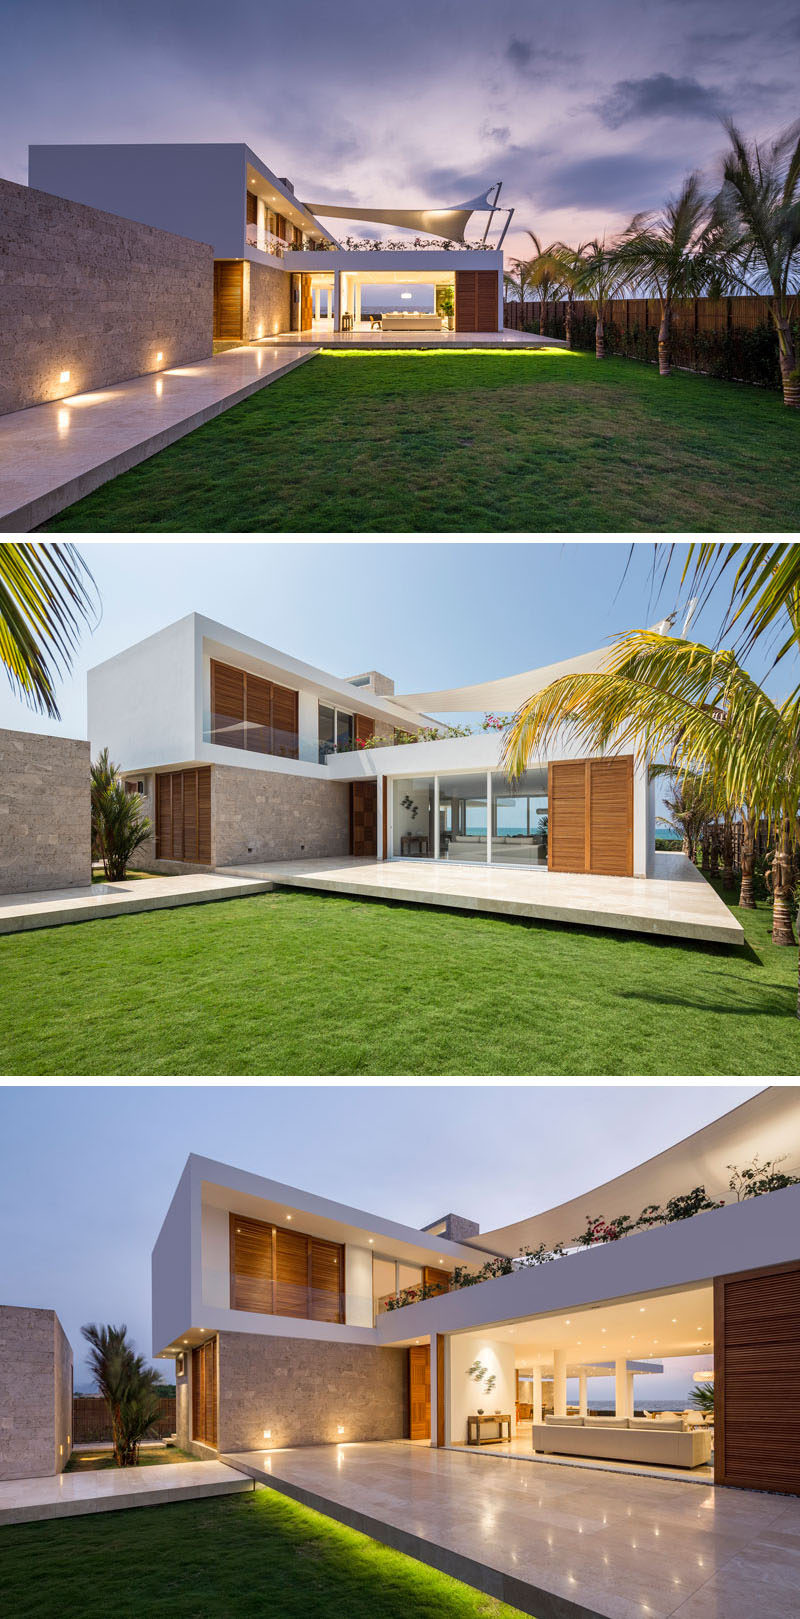 Beach Home Design interesting beach home designs modern peenmedia com This Modern Beach House Has A Stone Walkway That Brings You To The Front Of The